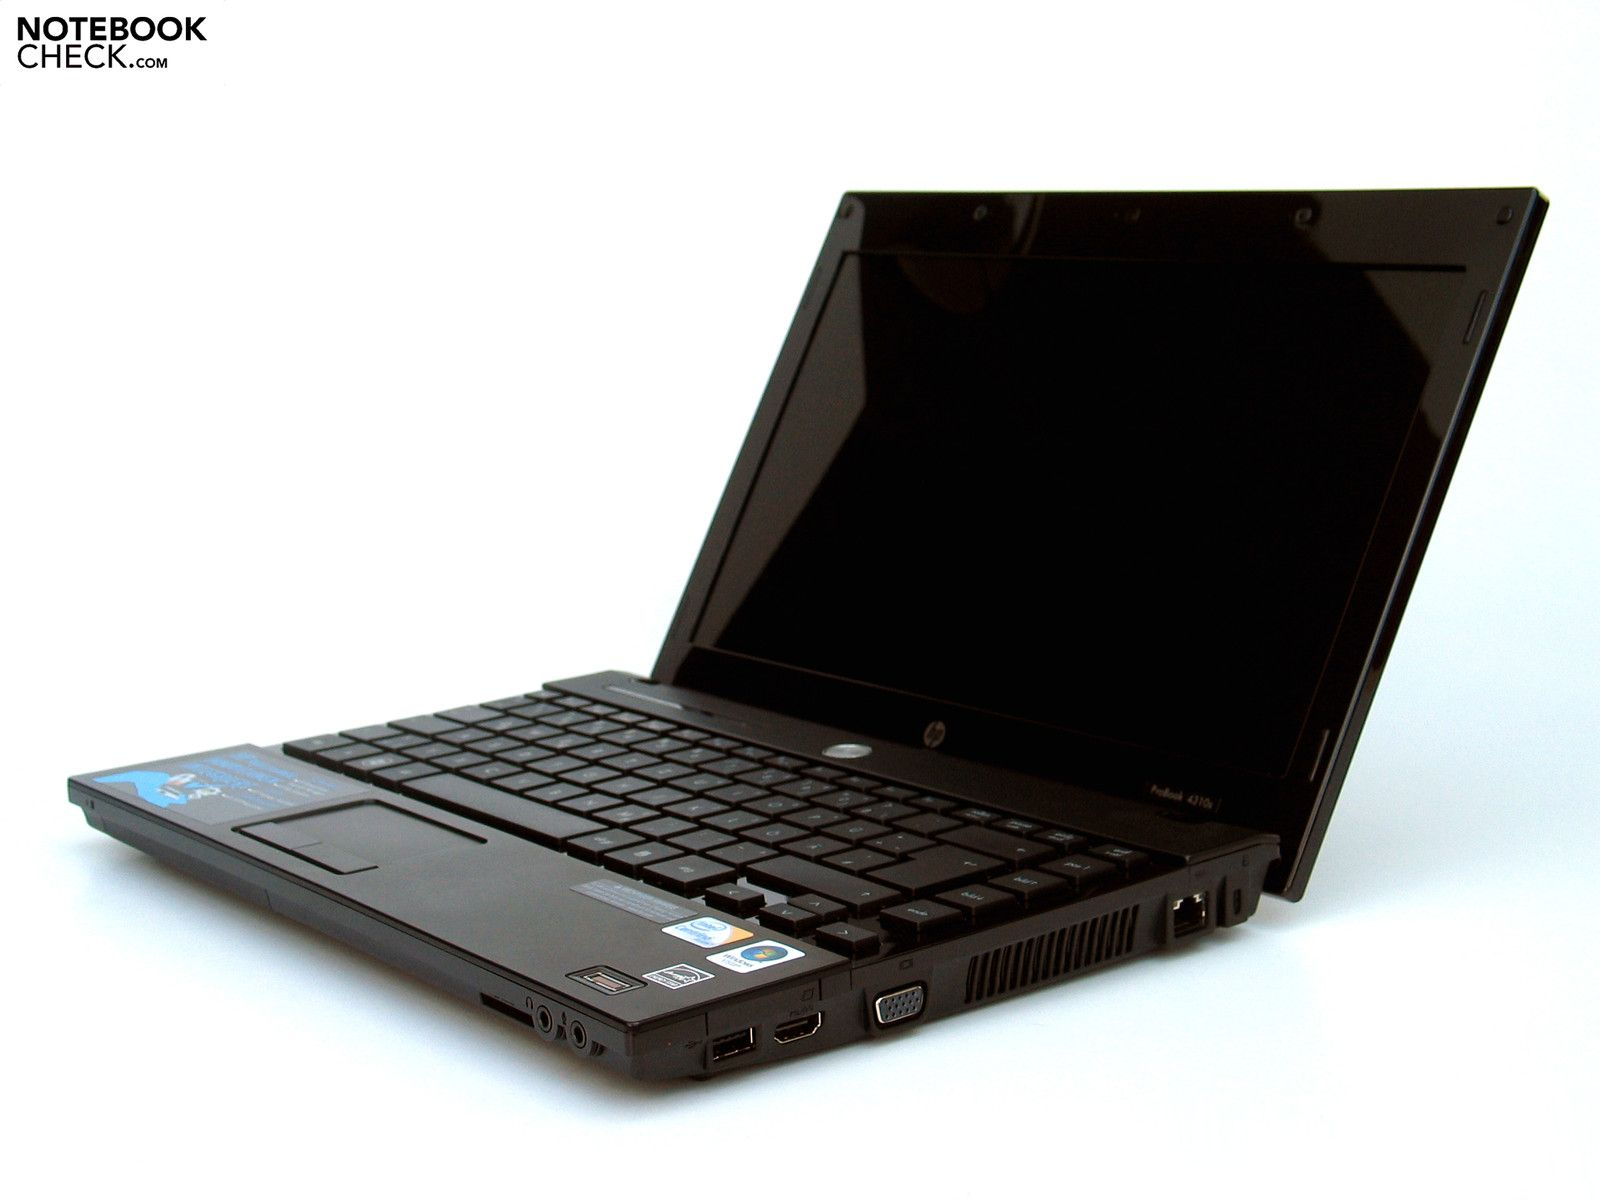 IBM laptop: review, features, advantages and disadvantages, reviews 57